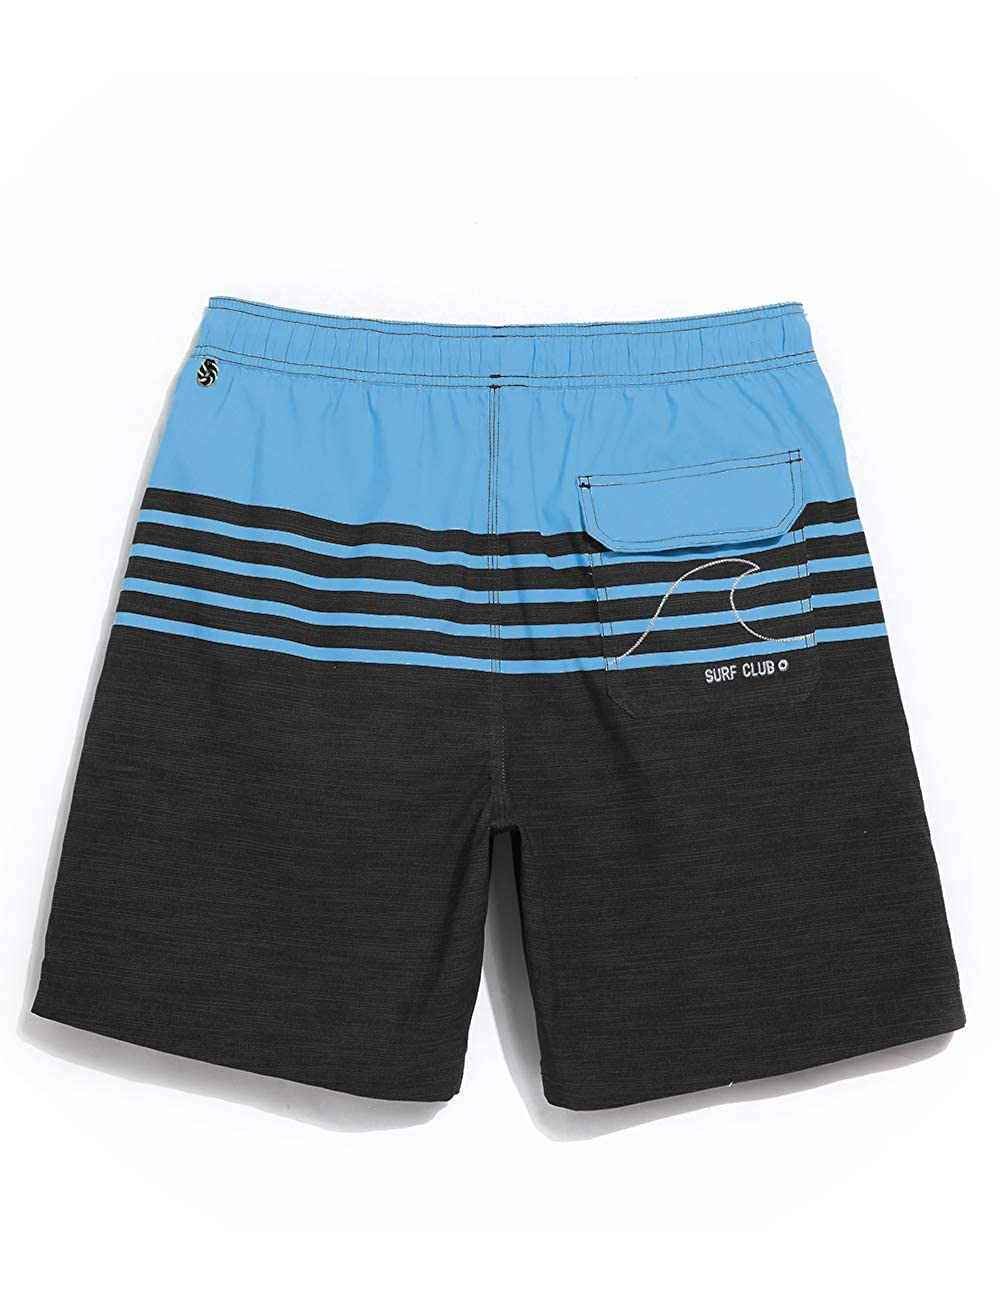 QRANSS Mens Quick Dry Swimming Trunks Bathing Suit Shorts Striped Mesh Liner